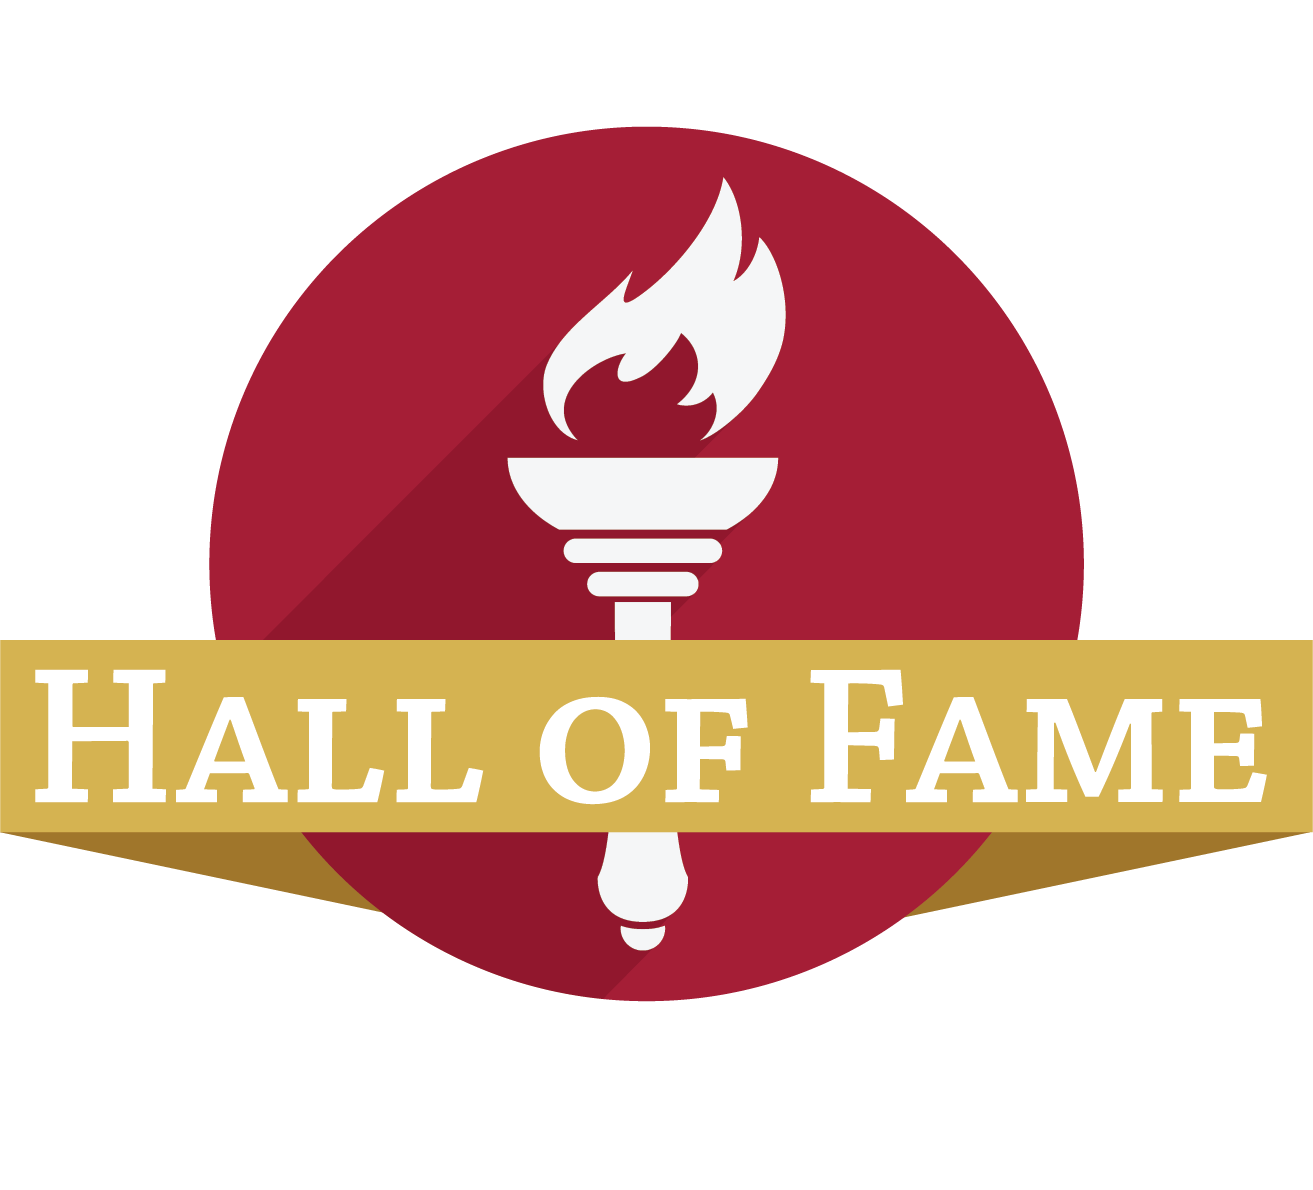 International Adult and Continuing Education Hall of Fame